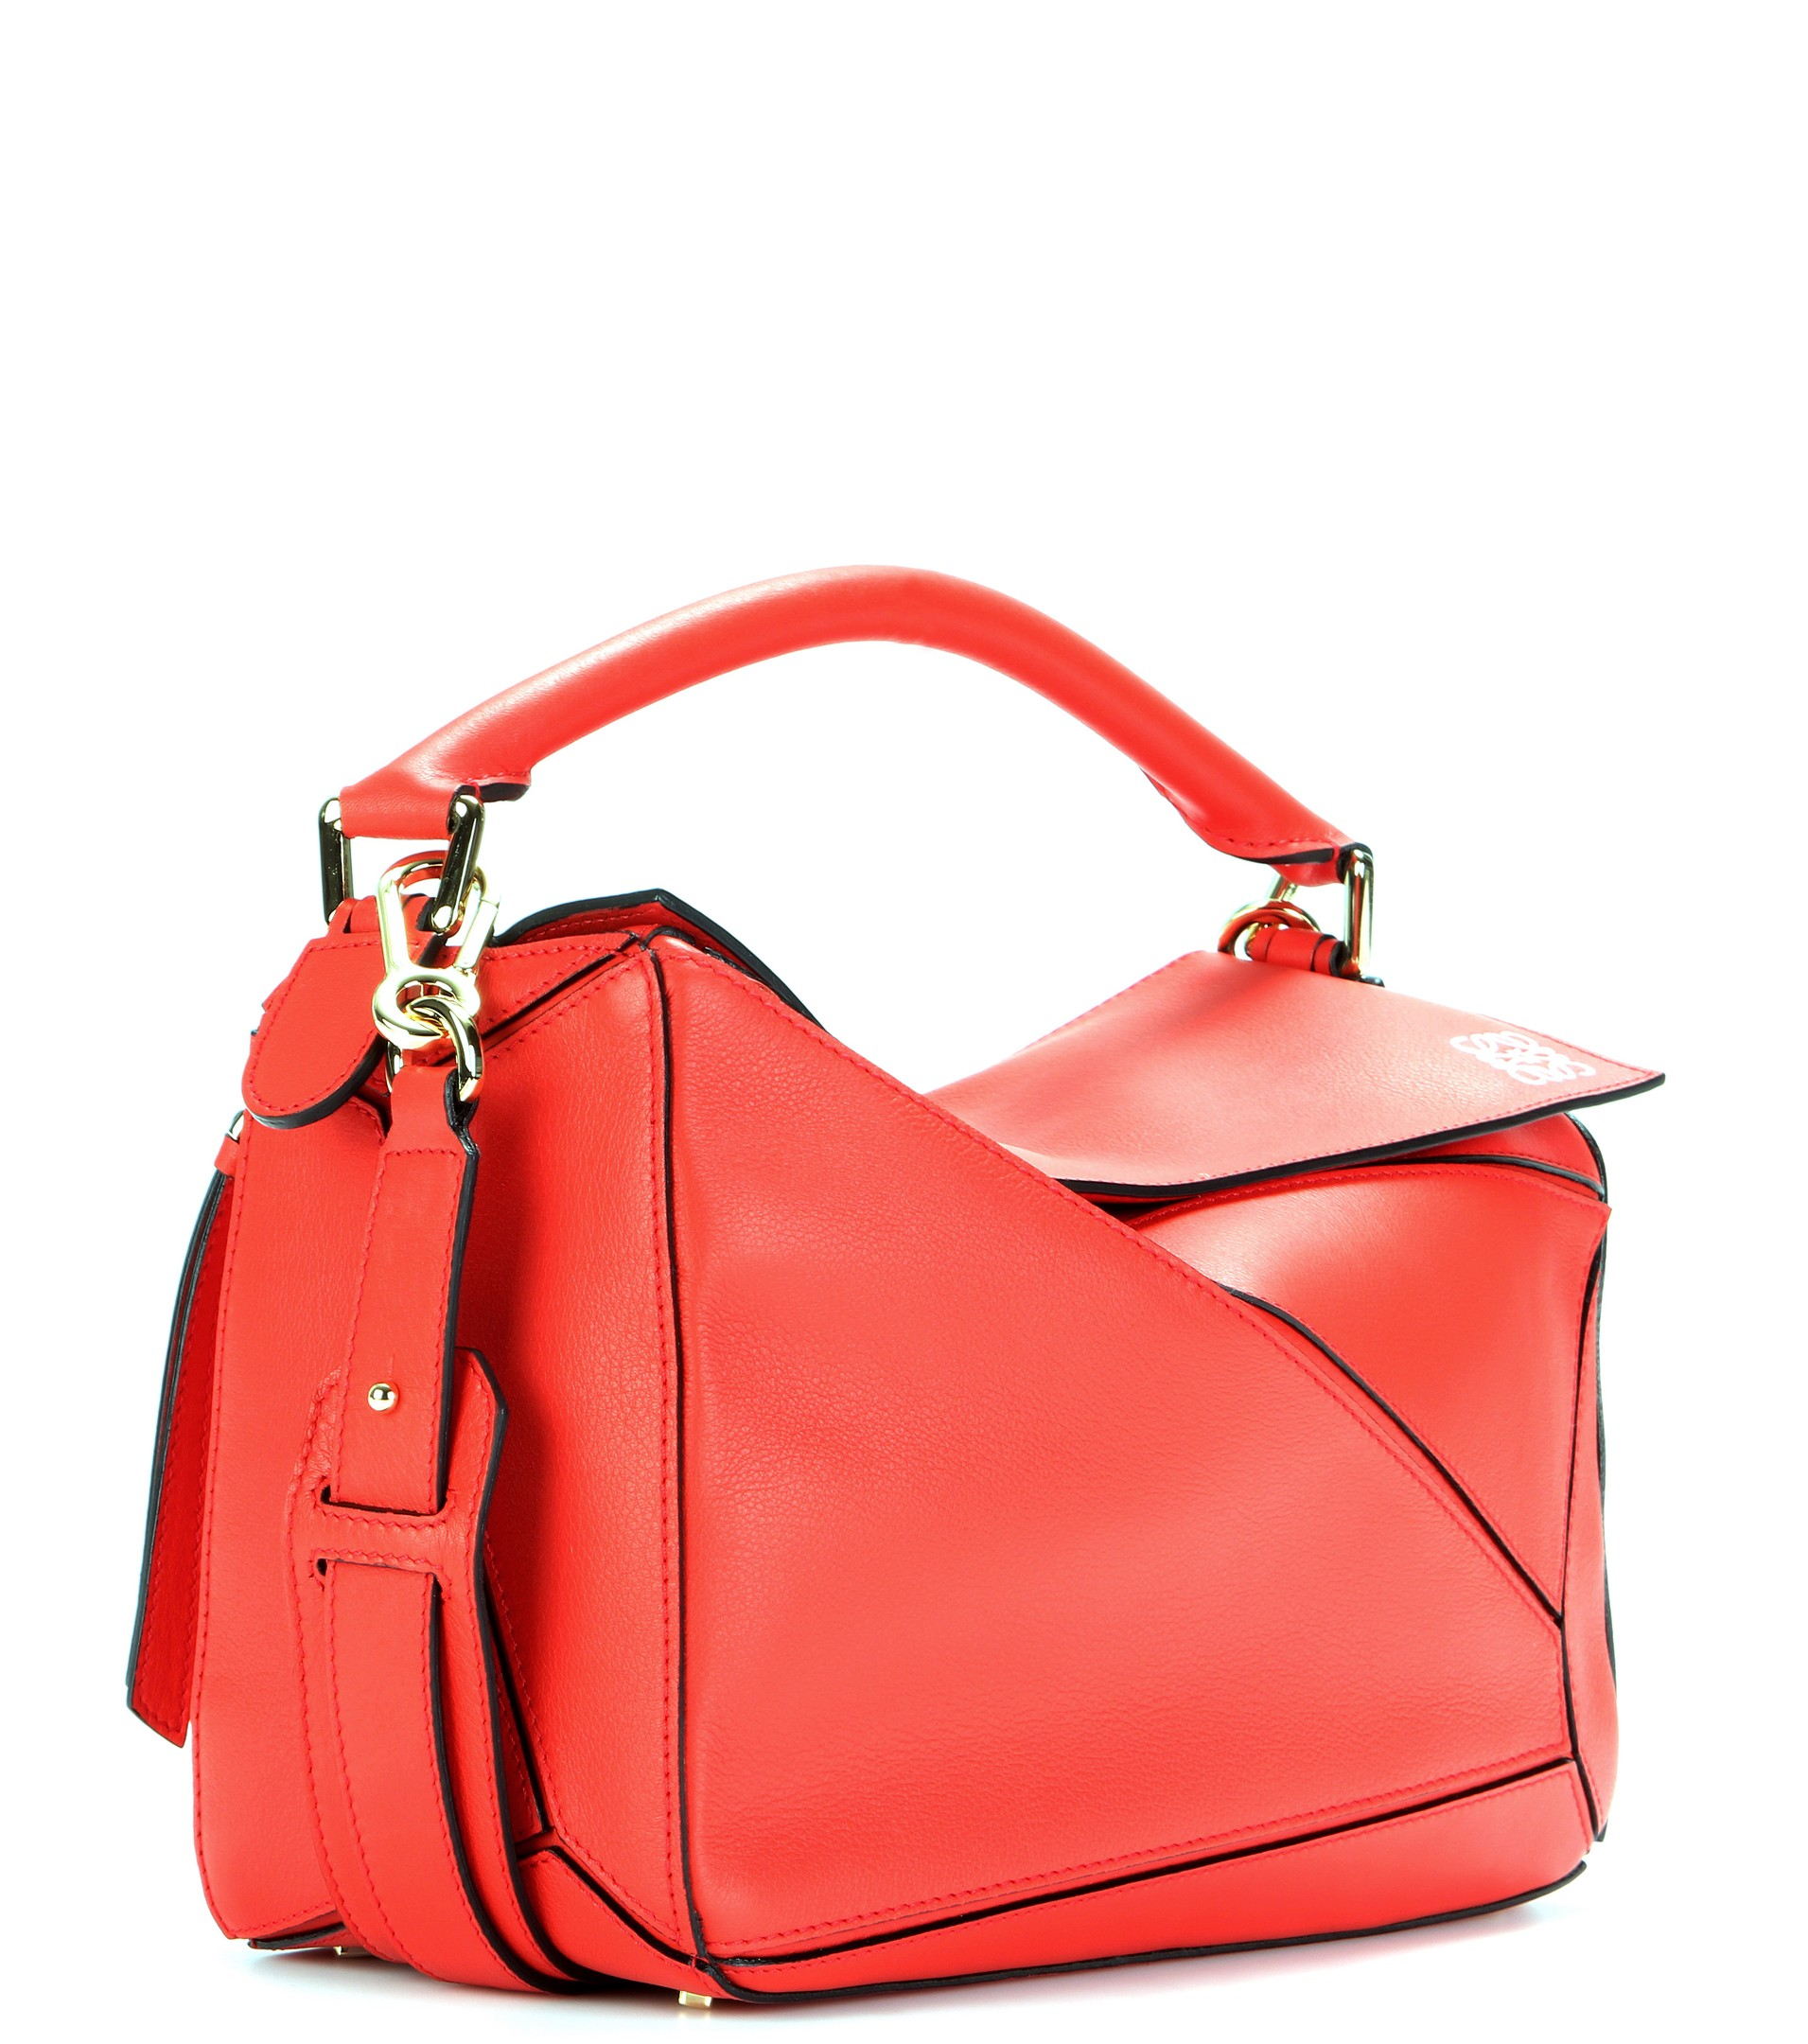 Loewe Puzzle Leather Shoulder Bag in Red